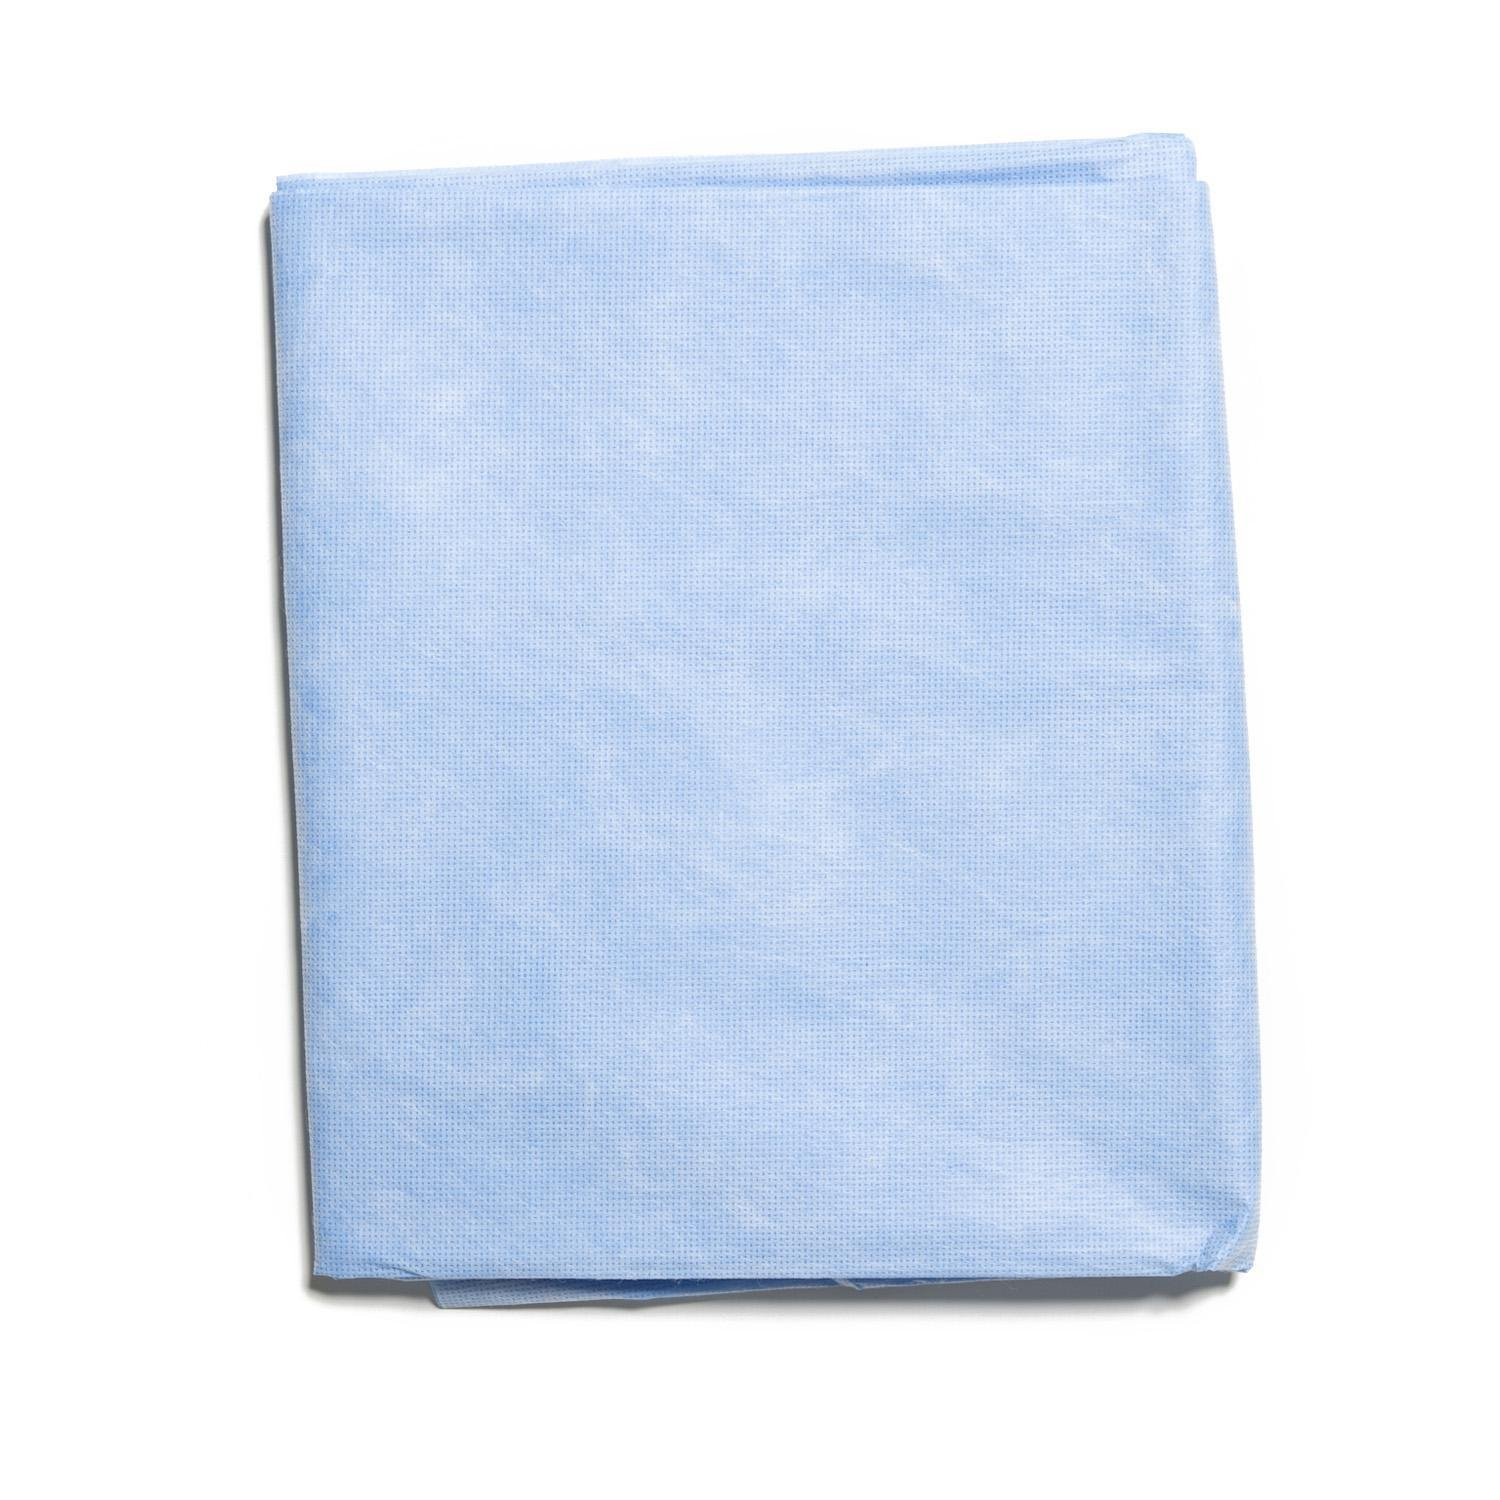 HALYARD Flat Top Sheets, Disposable, 60 Inch x 96 Inch, Blue 67963 (Case of 30)